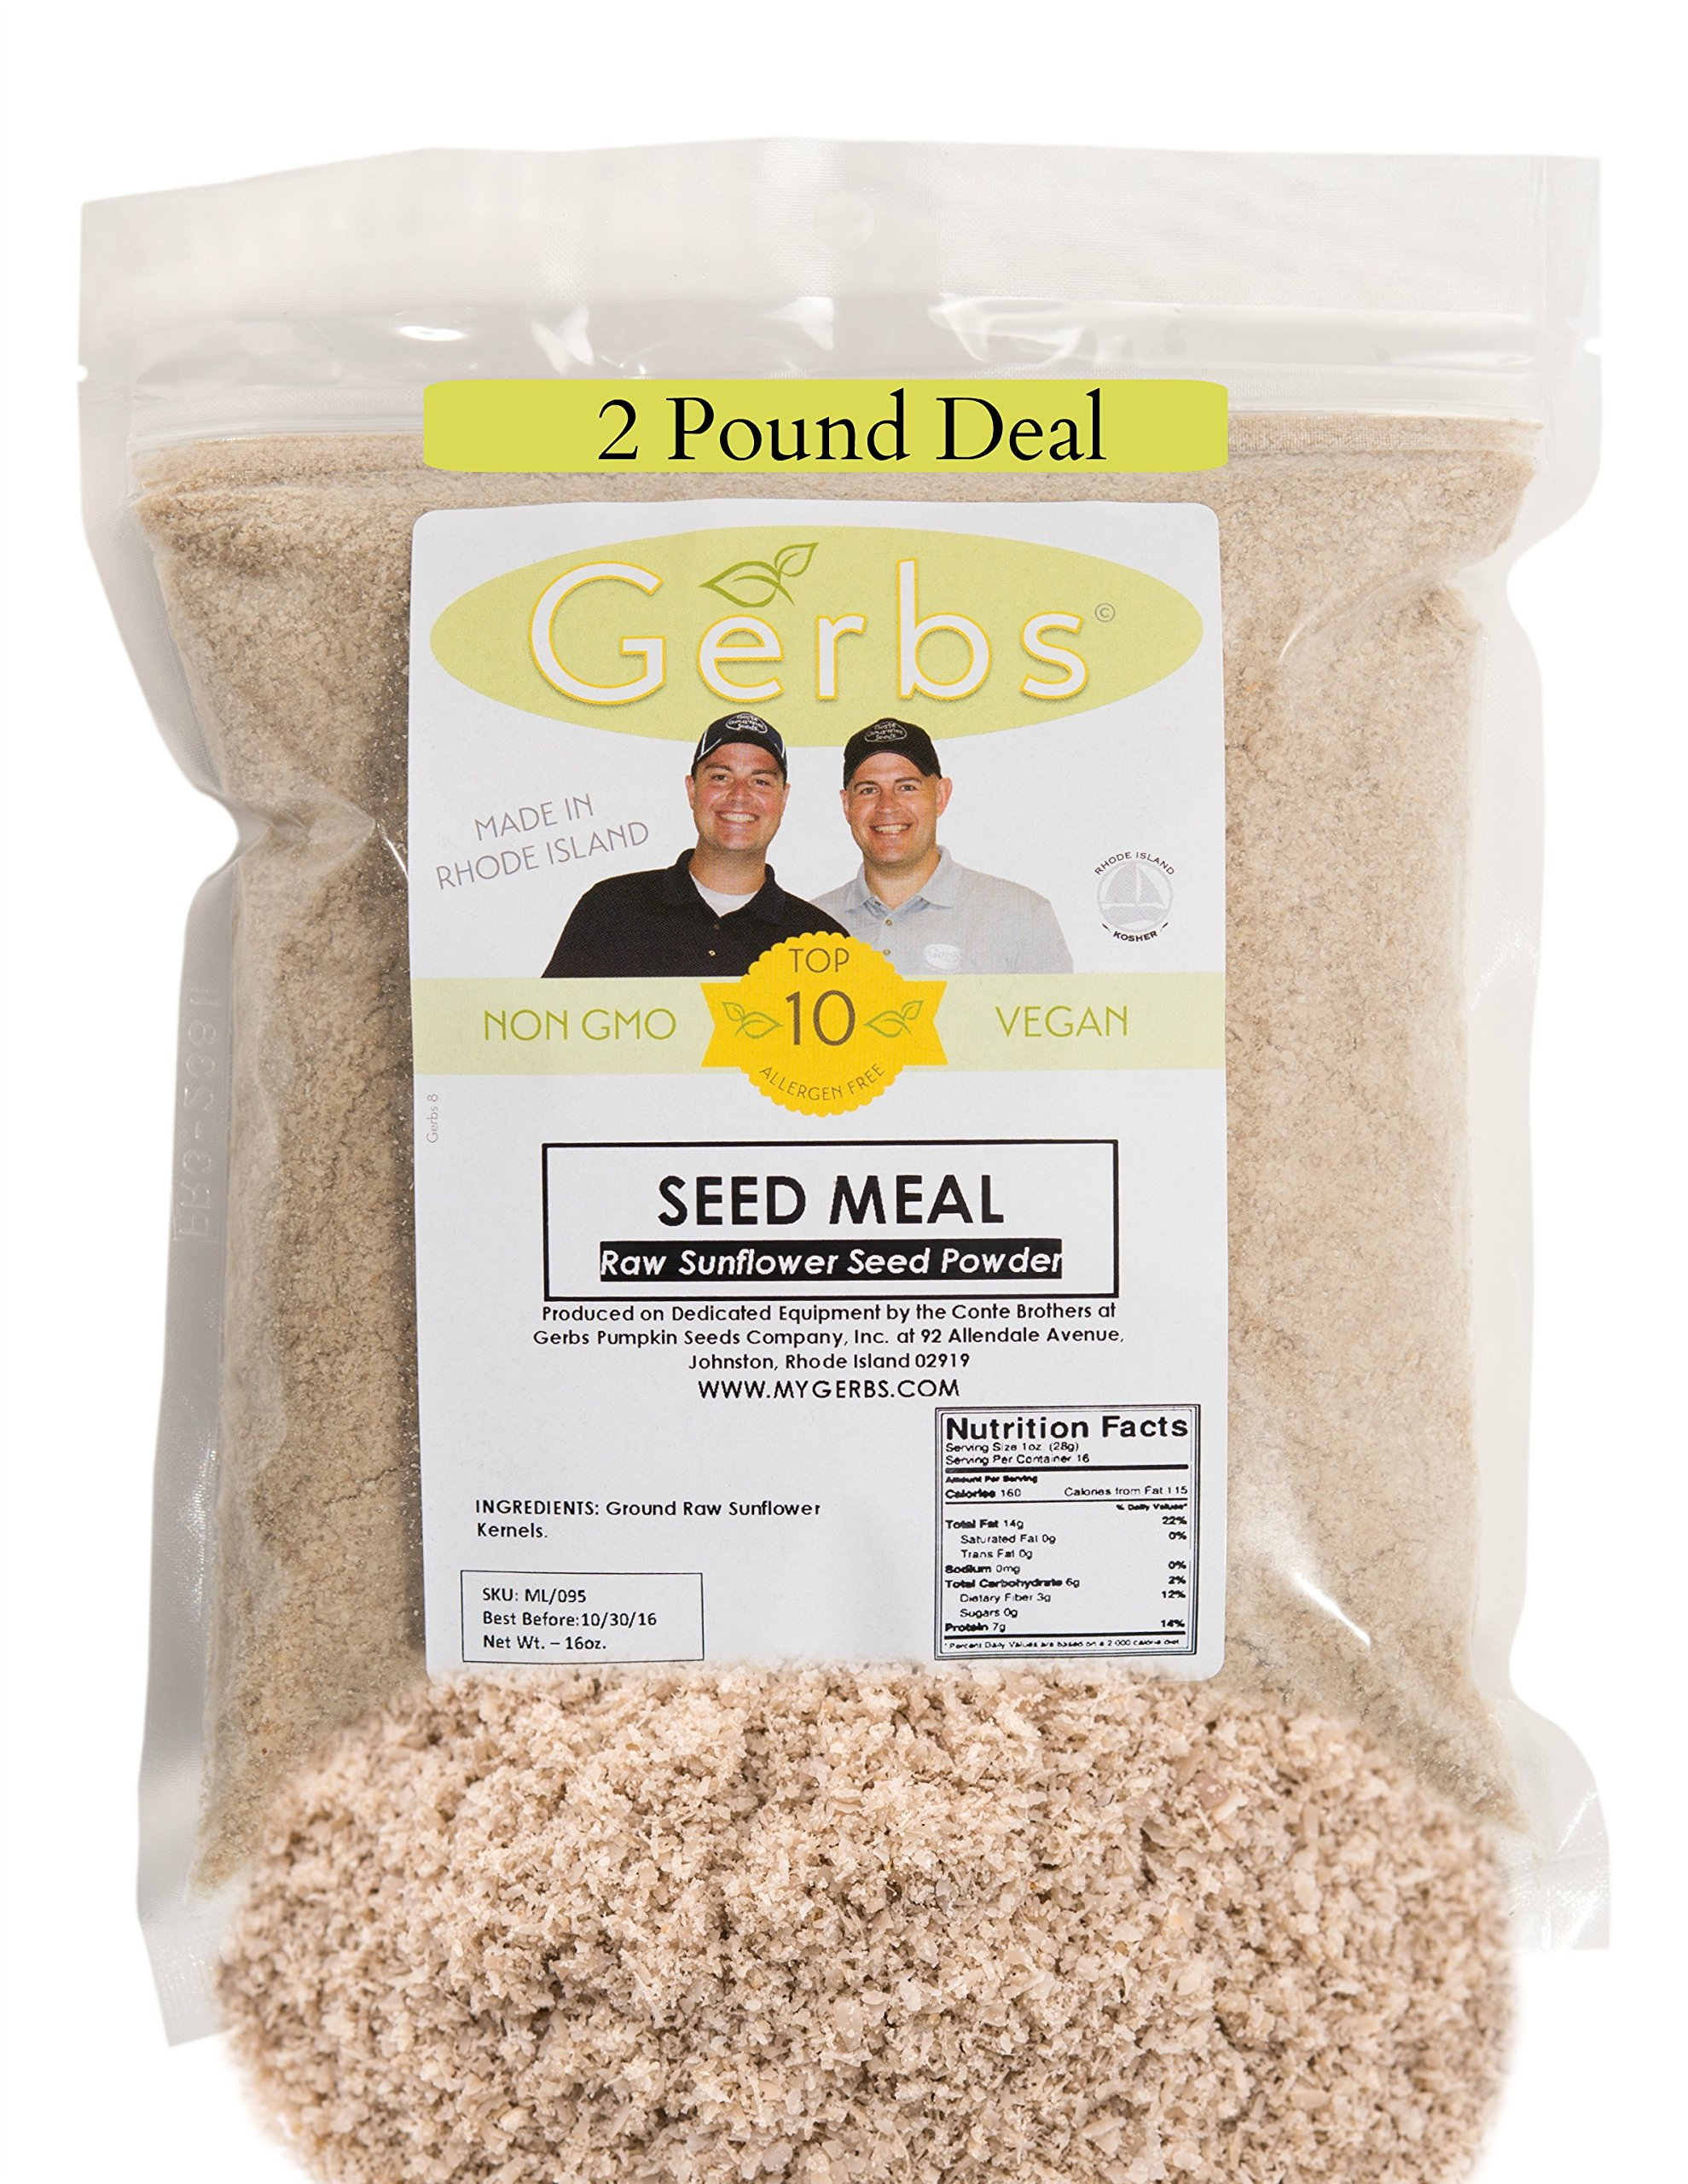 Khanapakana Coupons - Ground raw sunflower seed meal by gerbs 2 lbs top 11 food allergen friendly